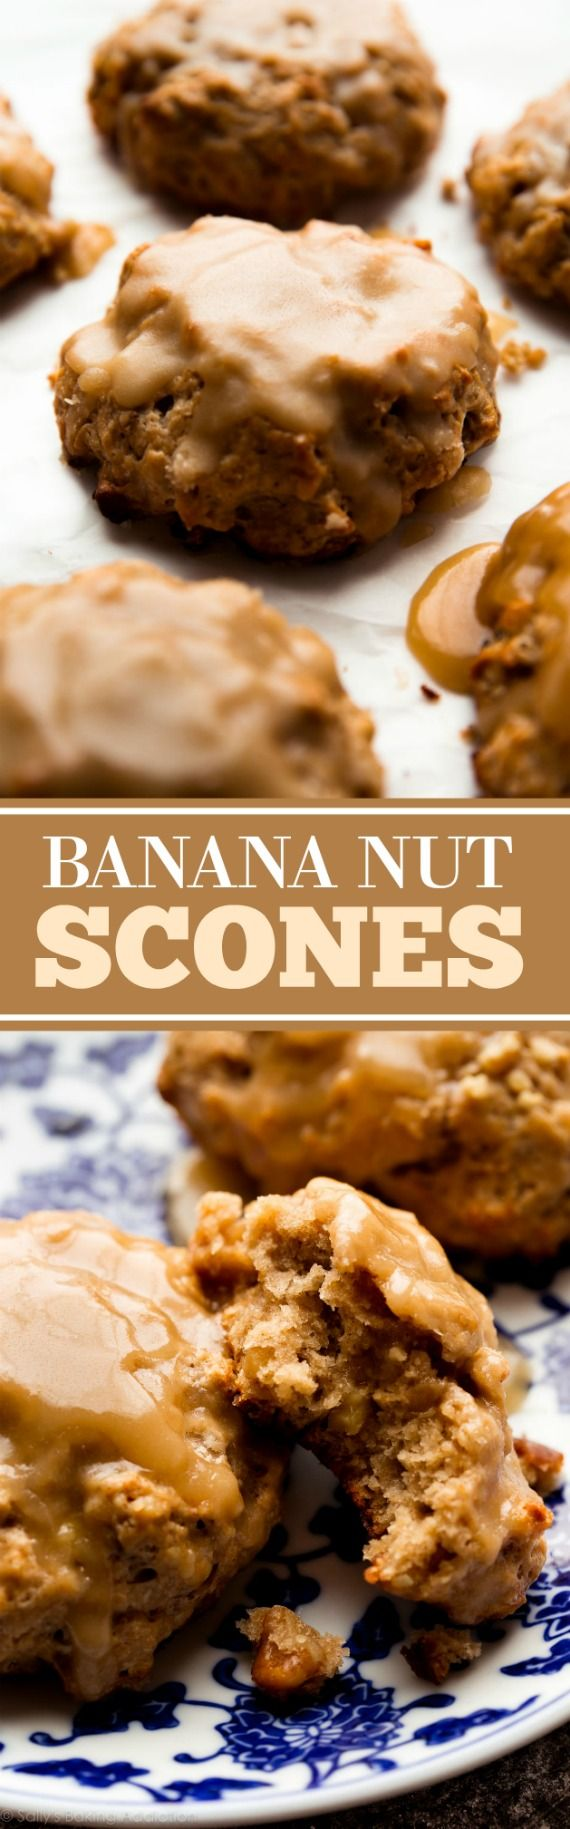 Deliciously moist, flaky, and crumbly banana nut scones with maple glaze. Not quite banana muffins, but everything you crave for breakfast! Recipe on sallysbakingaddiction.com